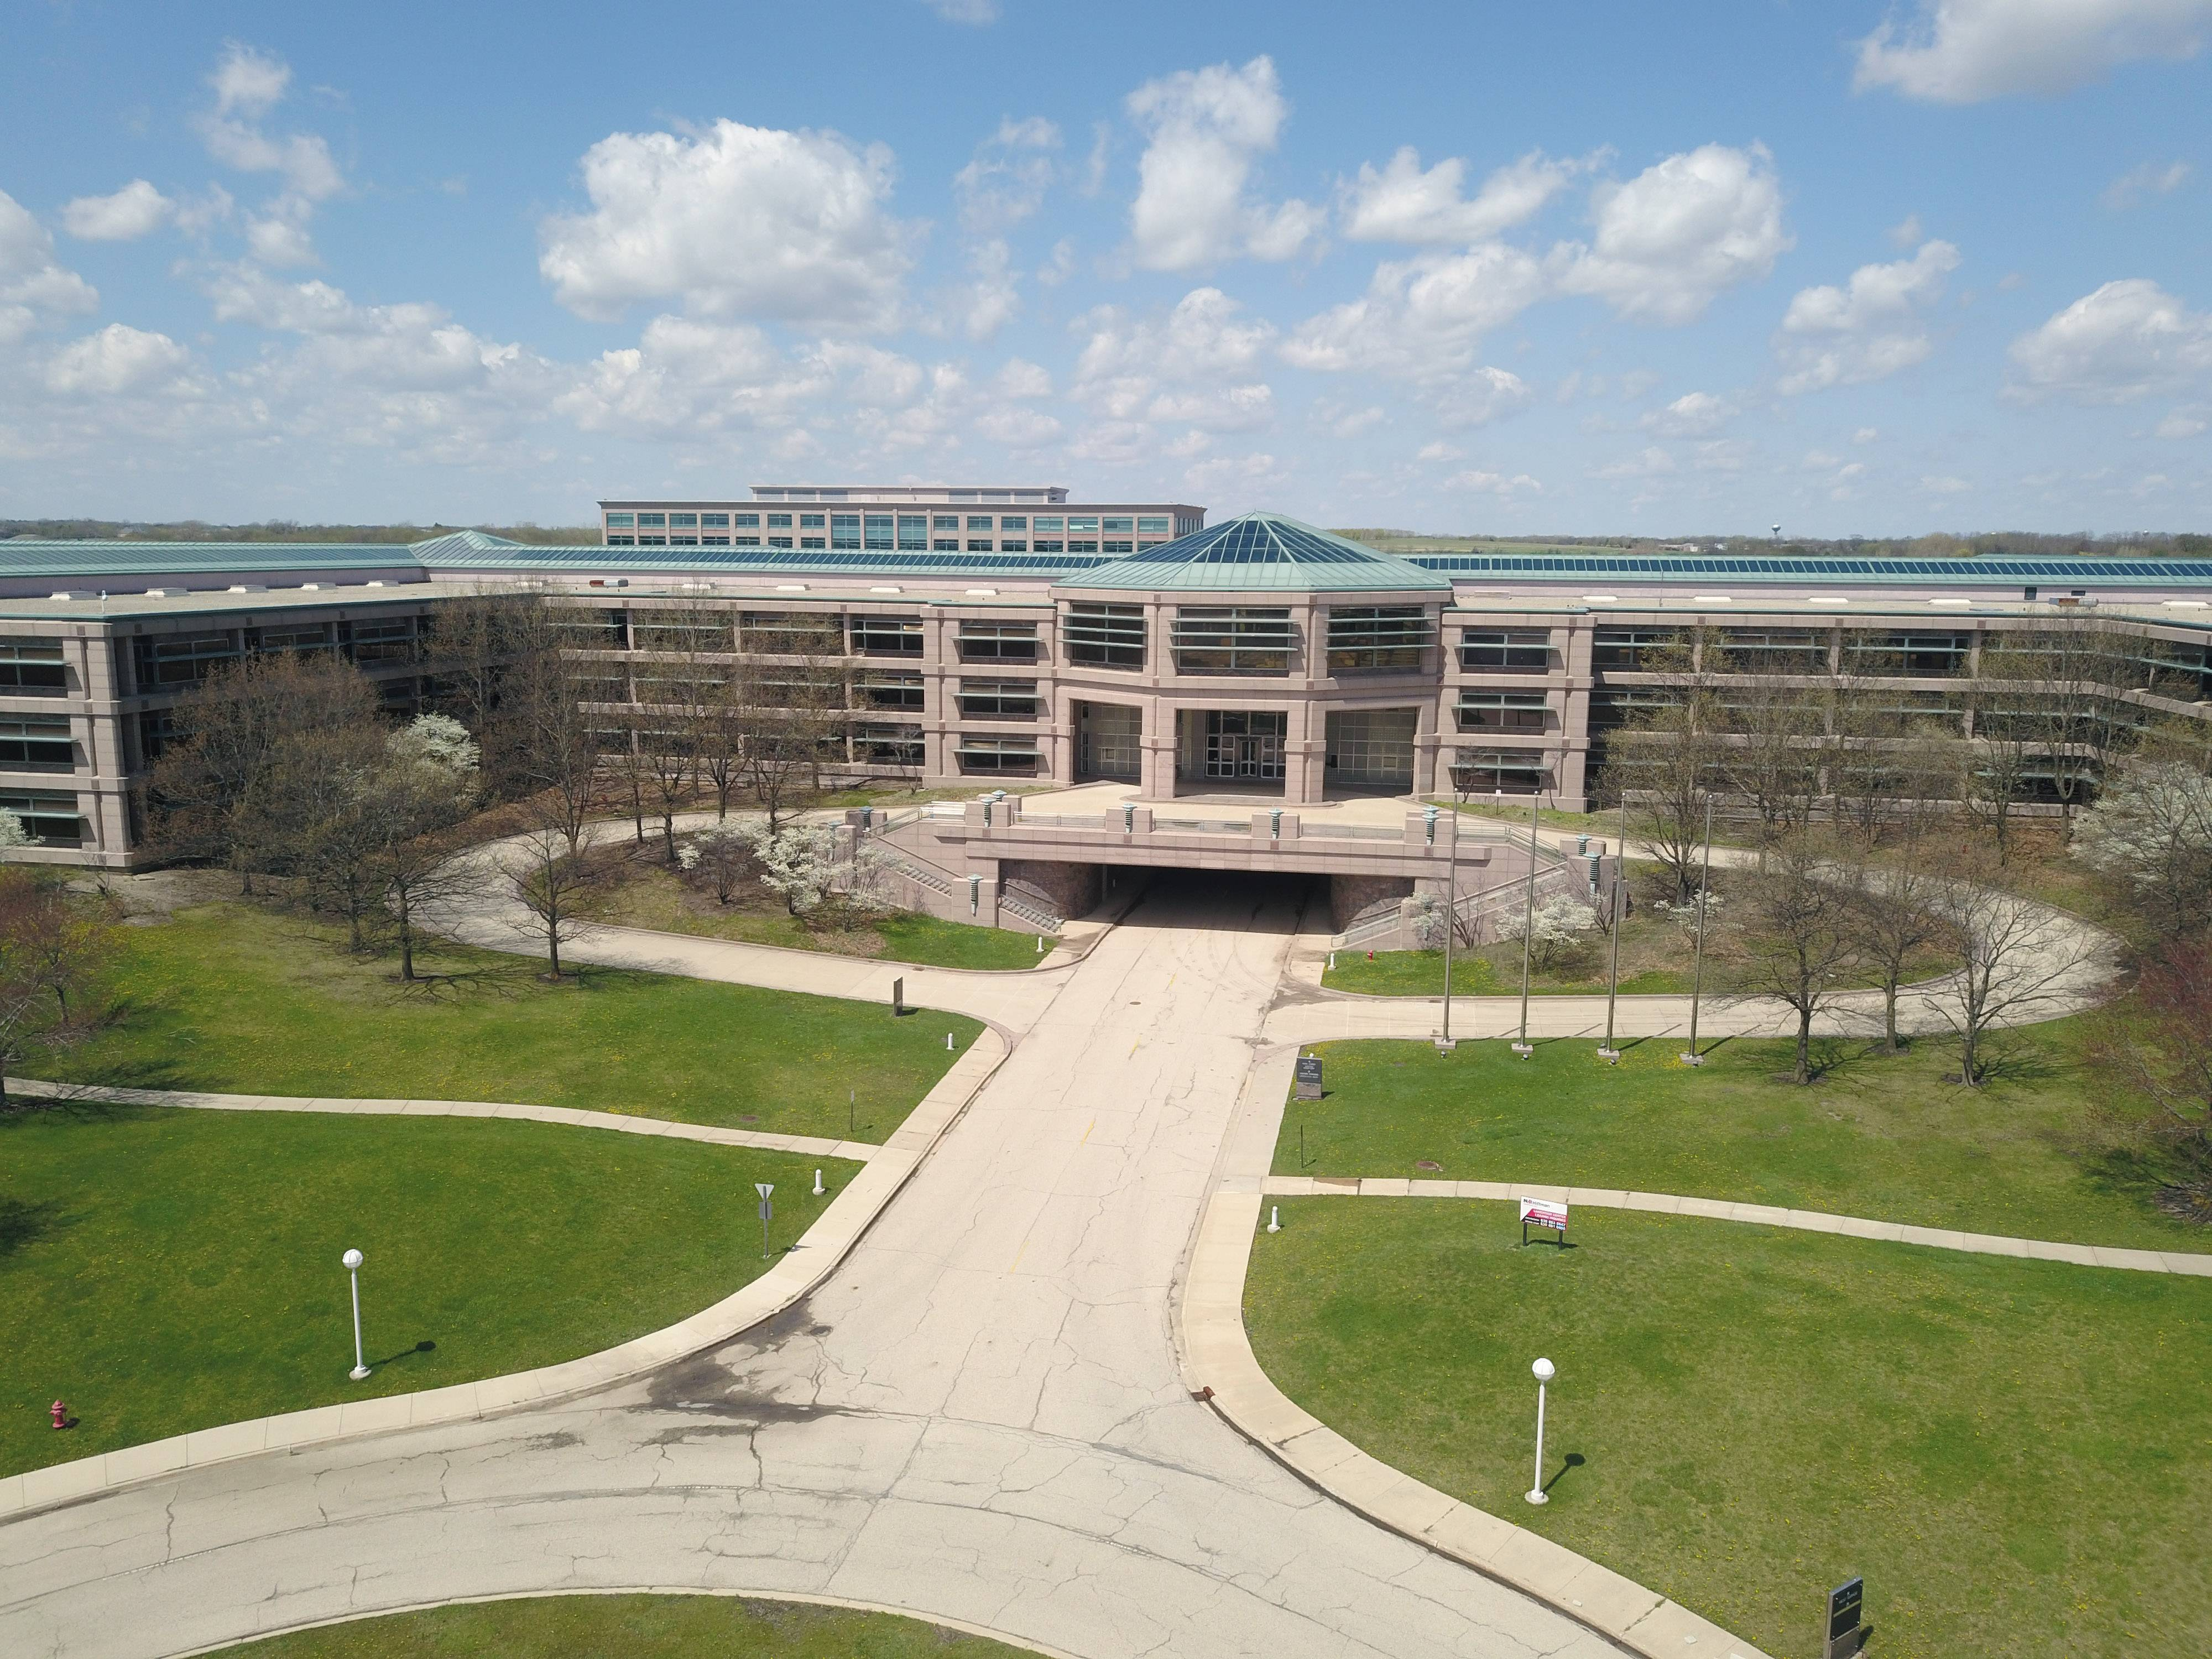 Taxing bodies back incentives for AT&T redevelopment in Hoffman Estates